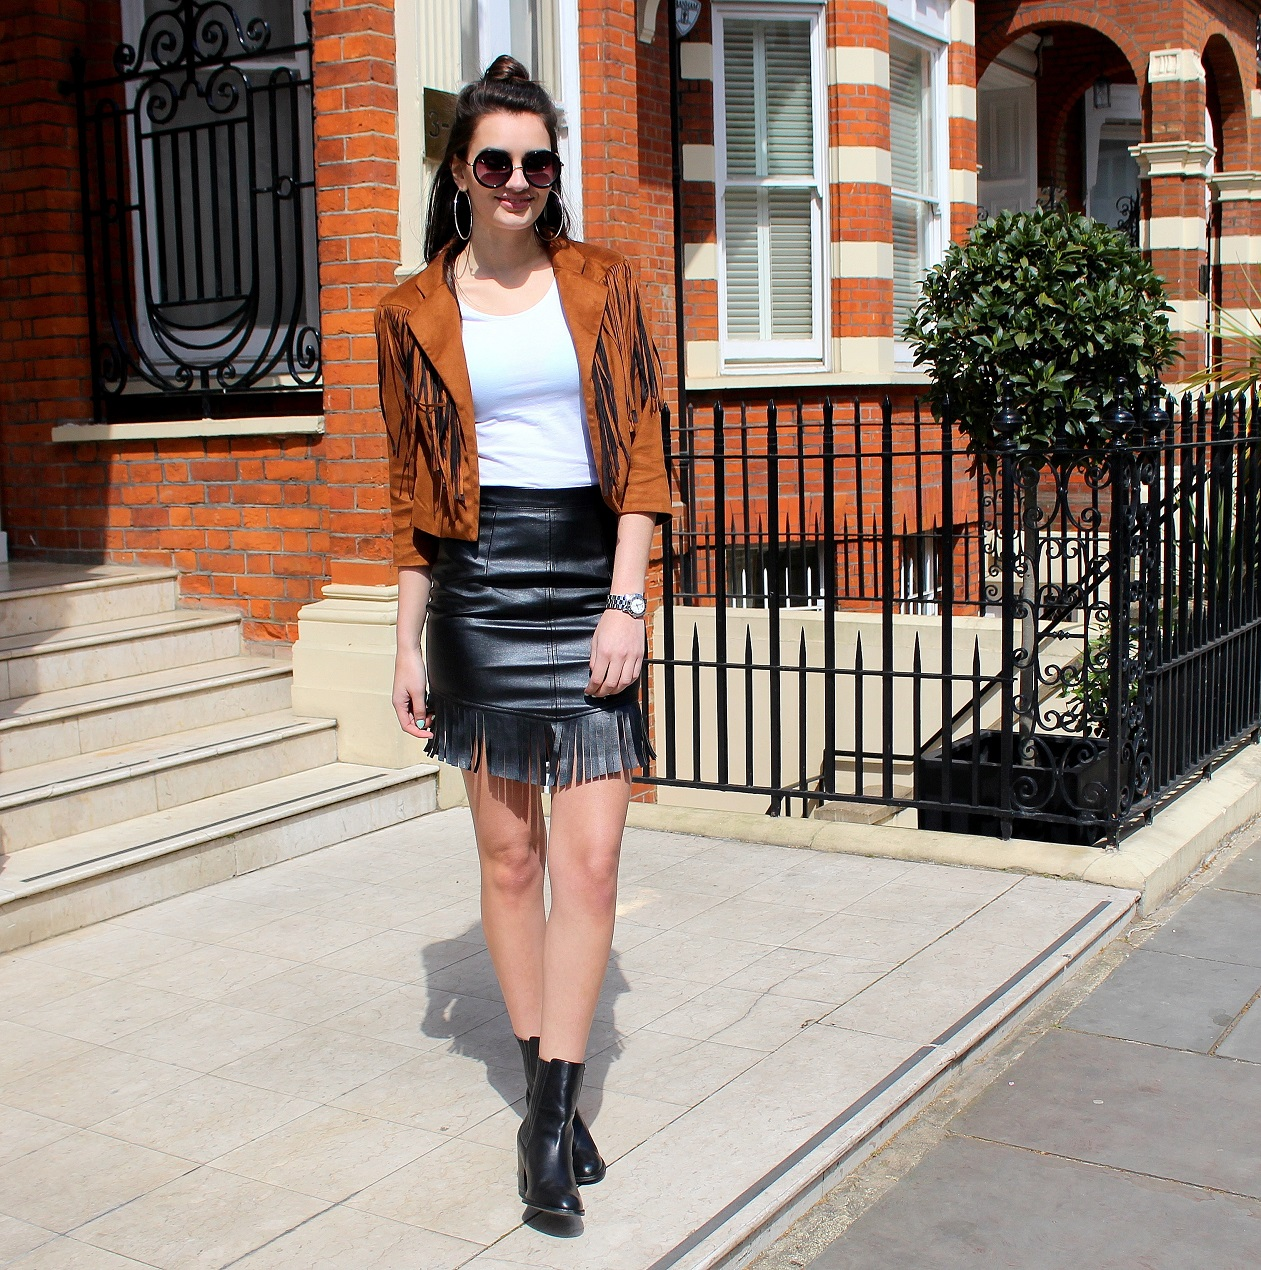 peexo-fashion-blogger-wearing-fringe-jacket-and-leather-skirt-and-boots-and-white-tshirt-and-round-sunglasses-in-spring-70s-inspired